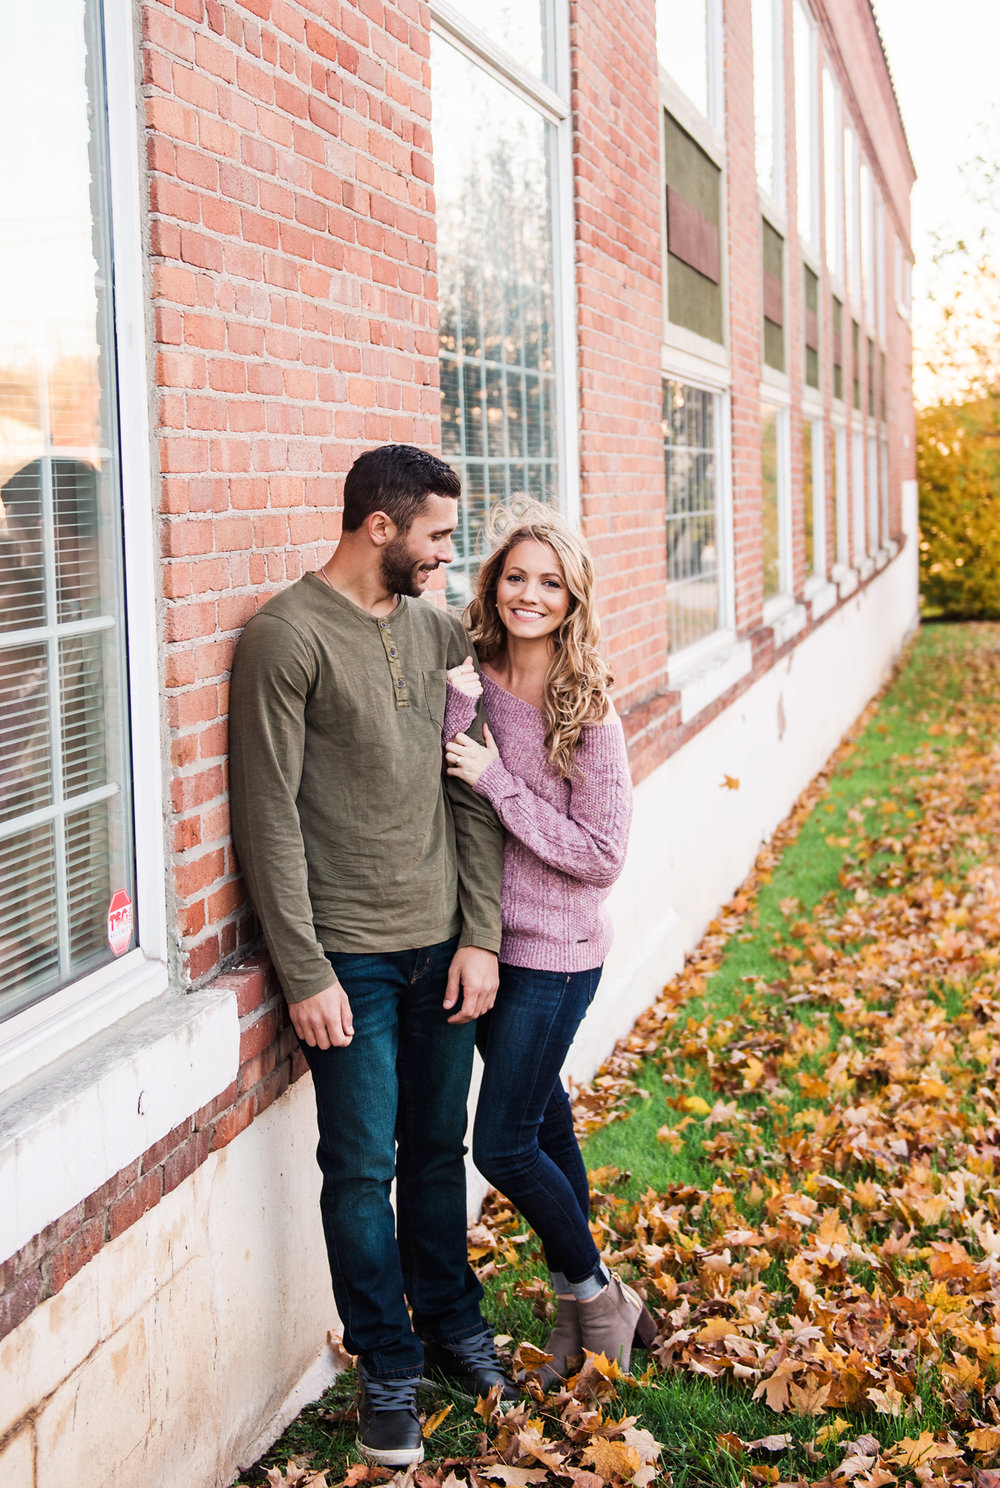 Village_of_Fairport_Rochester_Engagement_Session_JILL_STUDIO_Rochester_NY_Photographer_DSC_8655.jpg